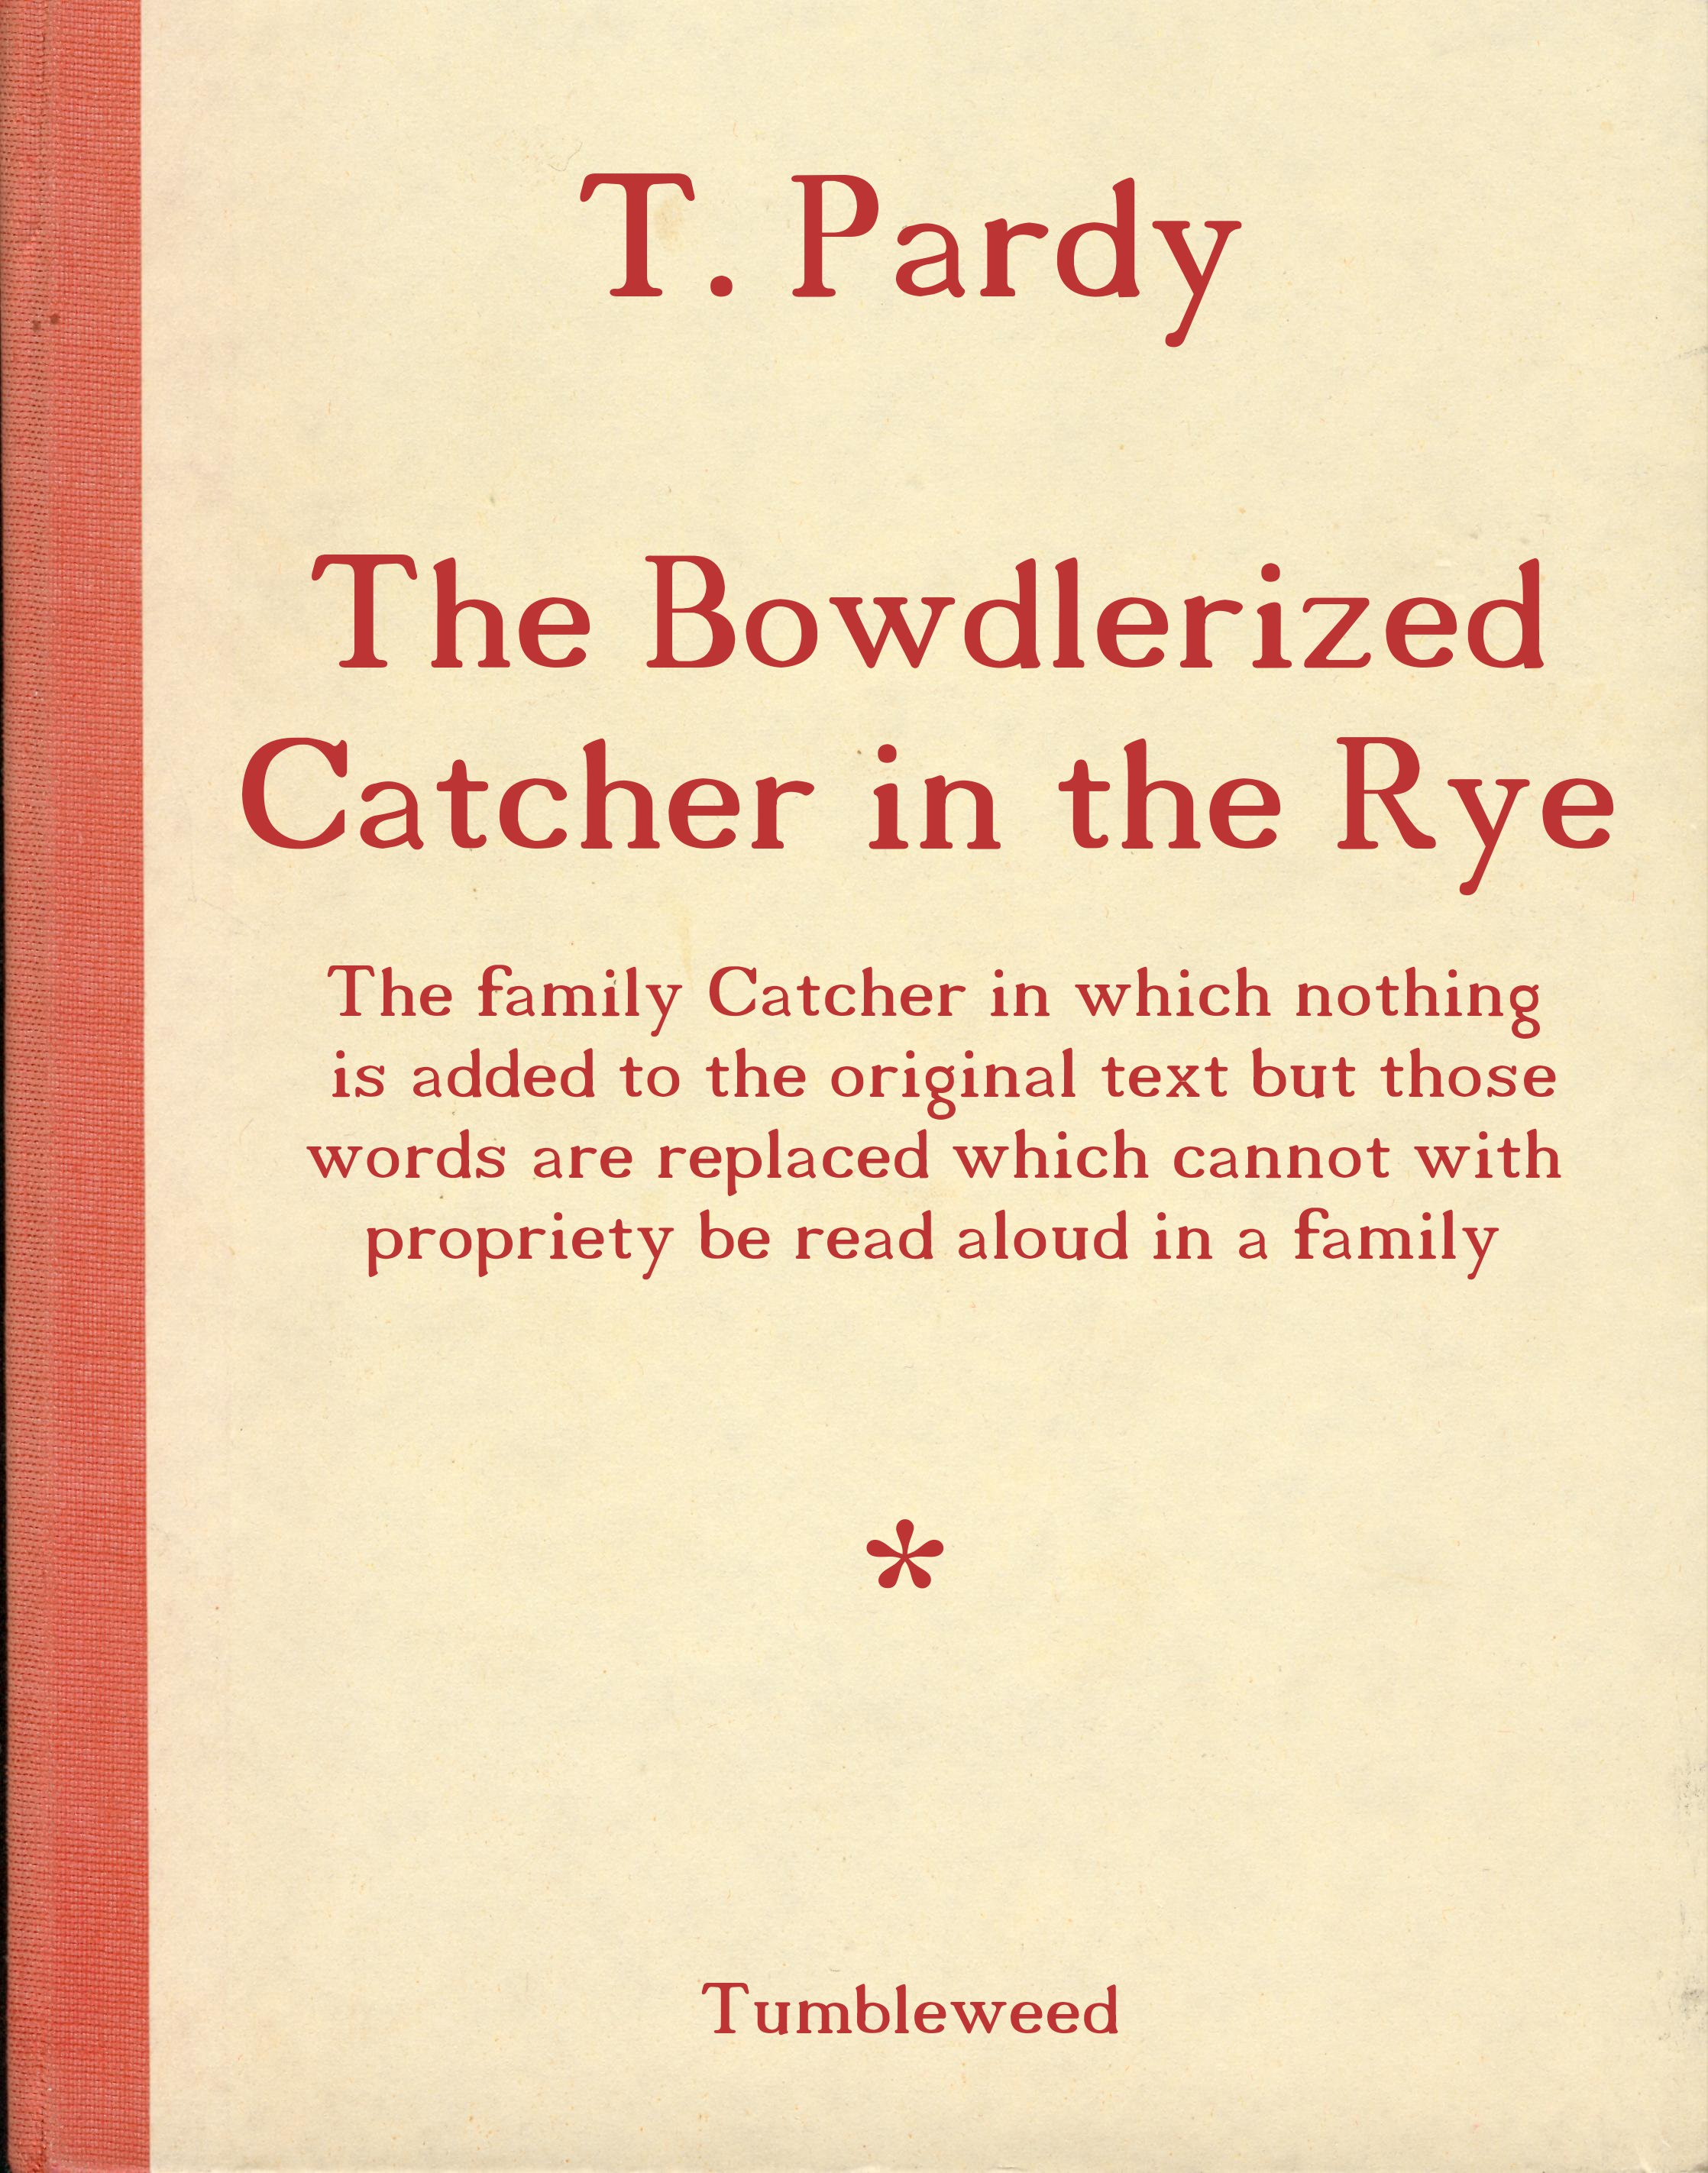 The Catcher in the Rye (Chap. 1)